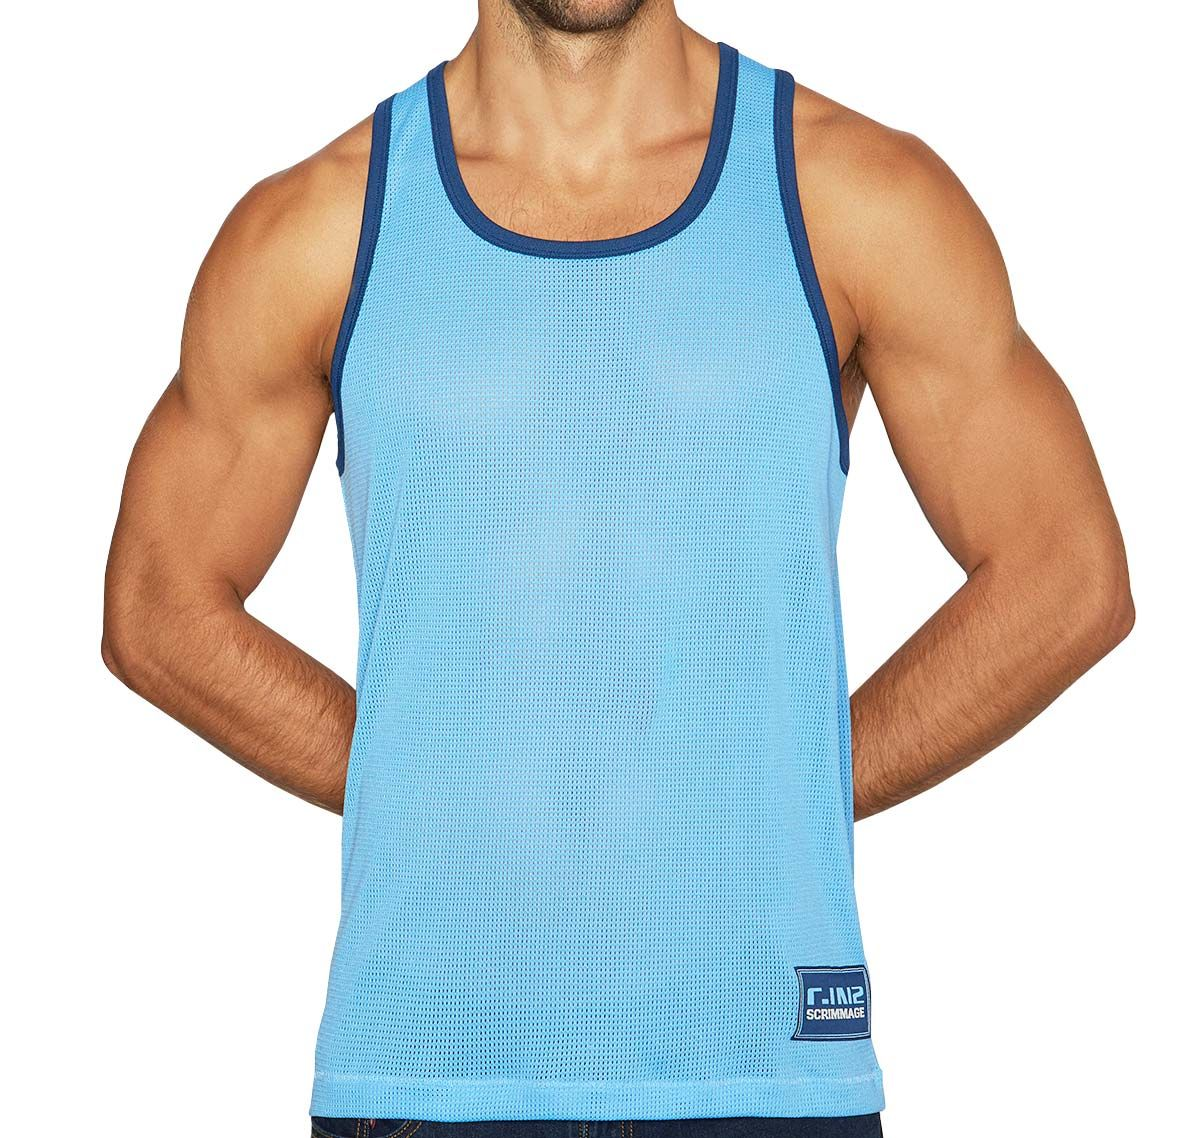 C-IN2 Tank Top SCRIMMAGE RELAXED TANK 6806-412A, blue